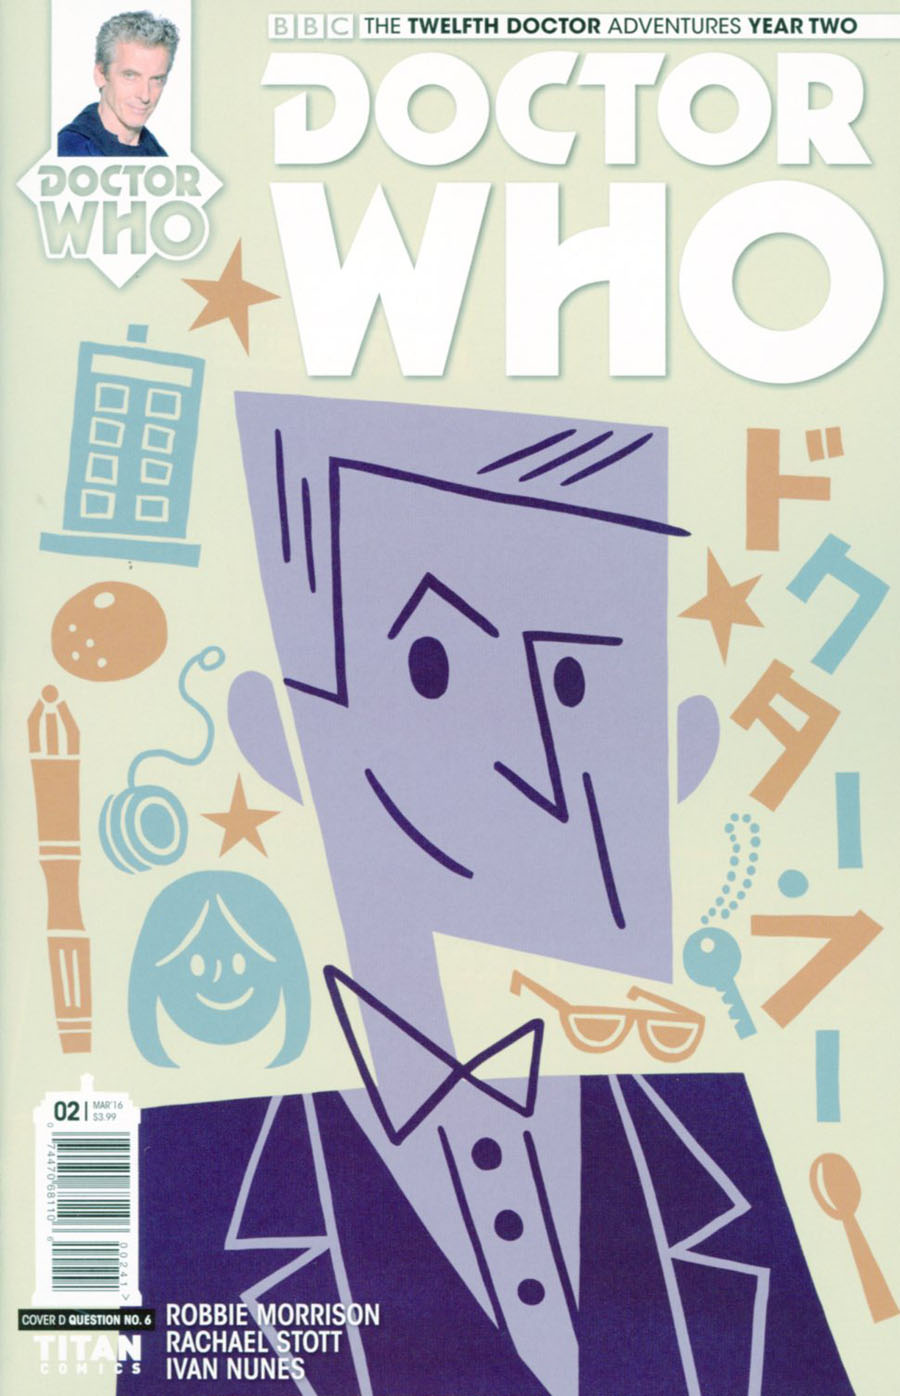 Doctor Who 12th Doctor Year Two #2 Cover C Variant Question No 6 Cover